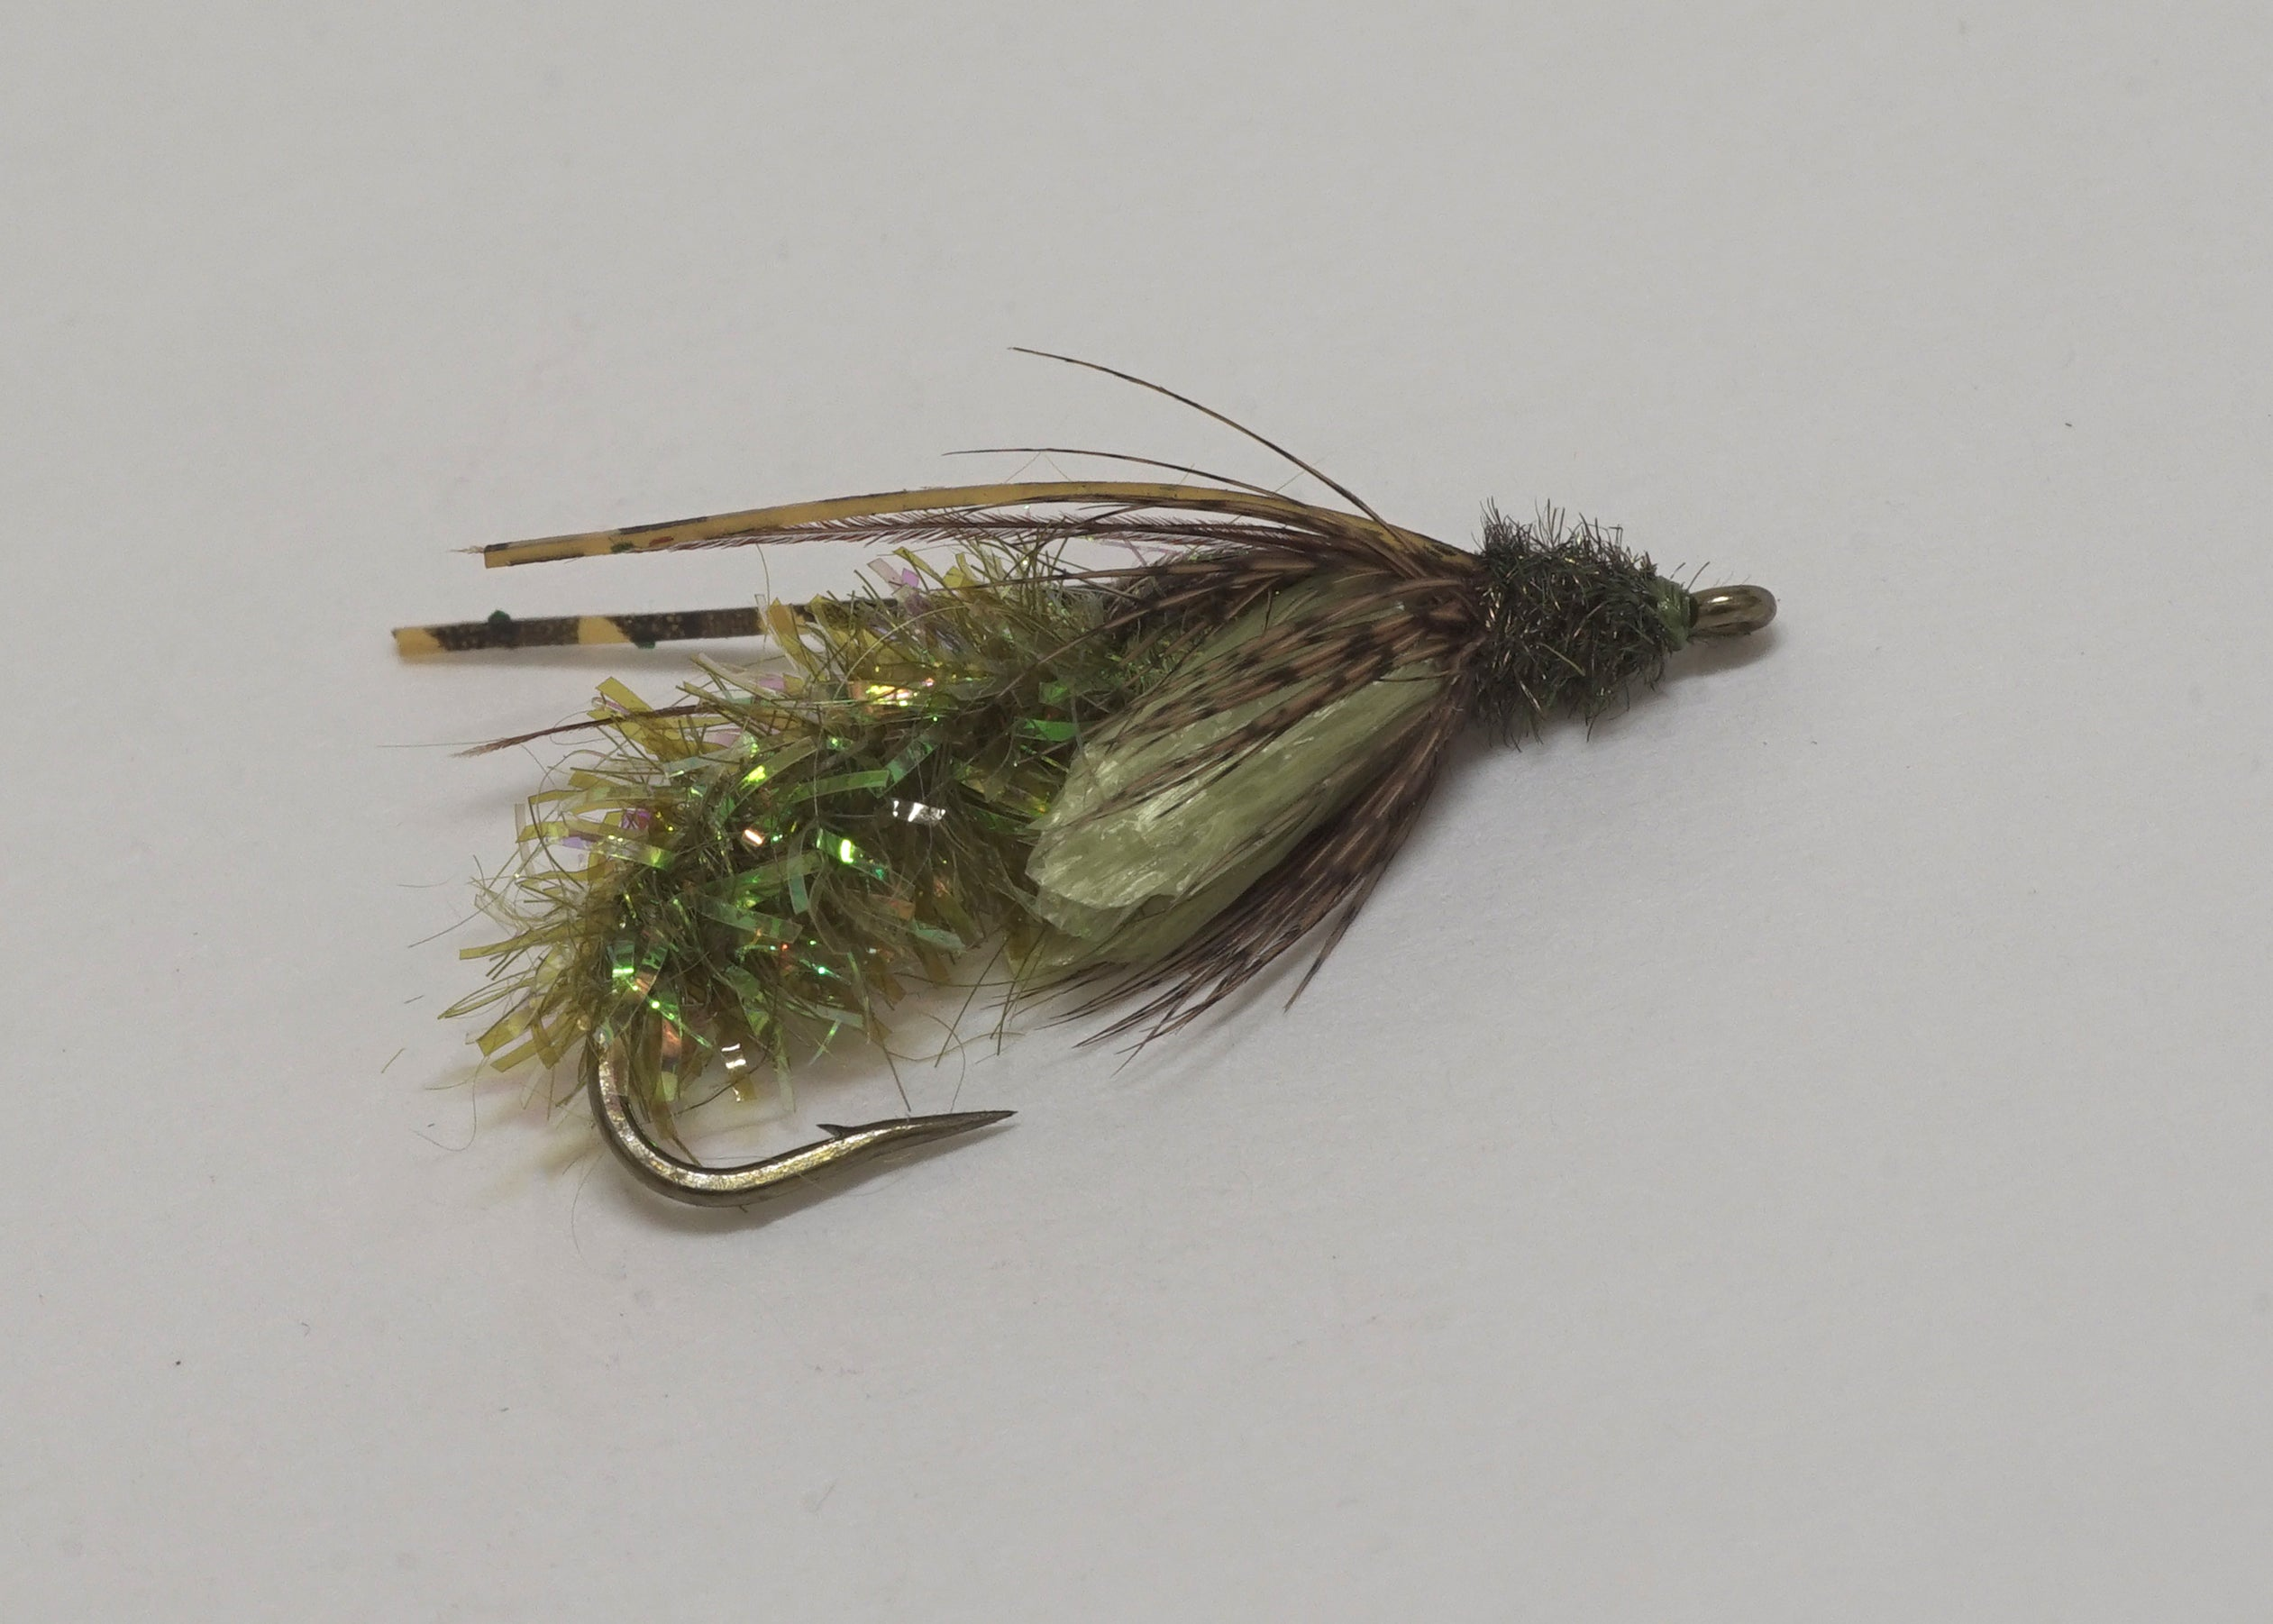 Phil Rowley's Crystal Sedge Pupa